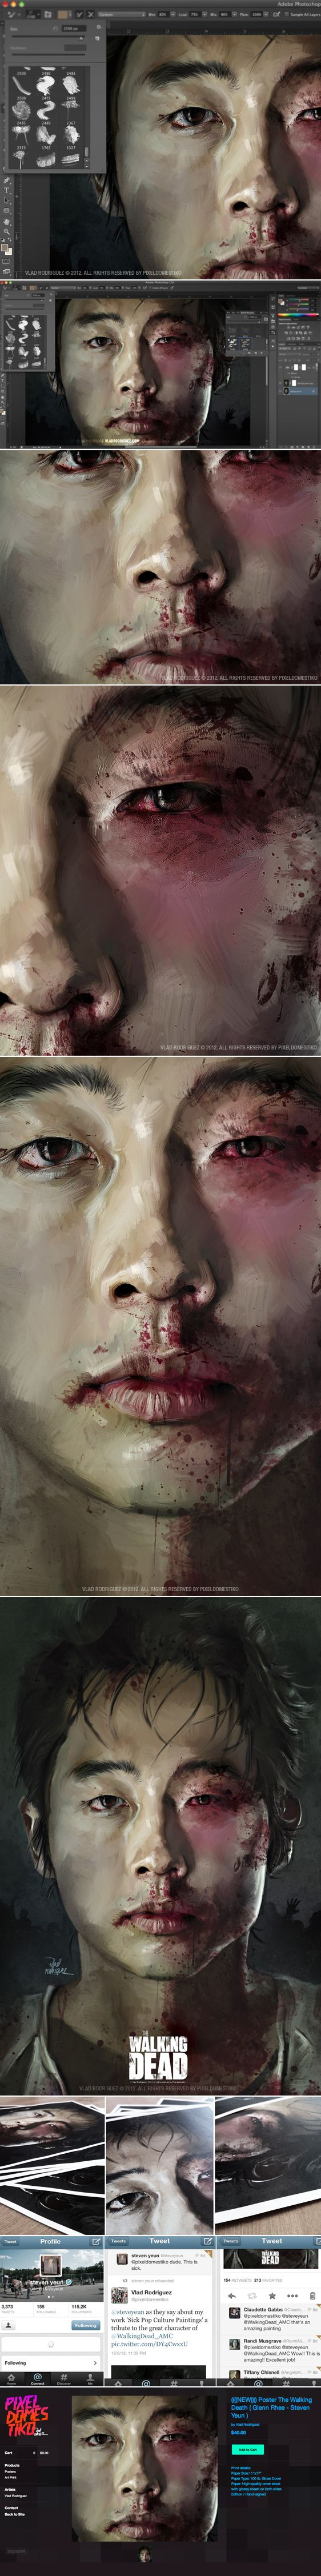 The Walking Dead (Glenn Rhee) by Vlad Rodriguez